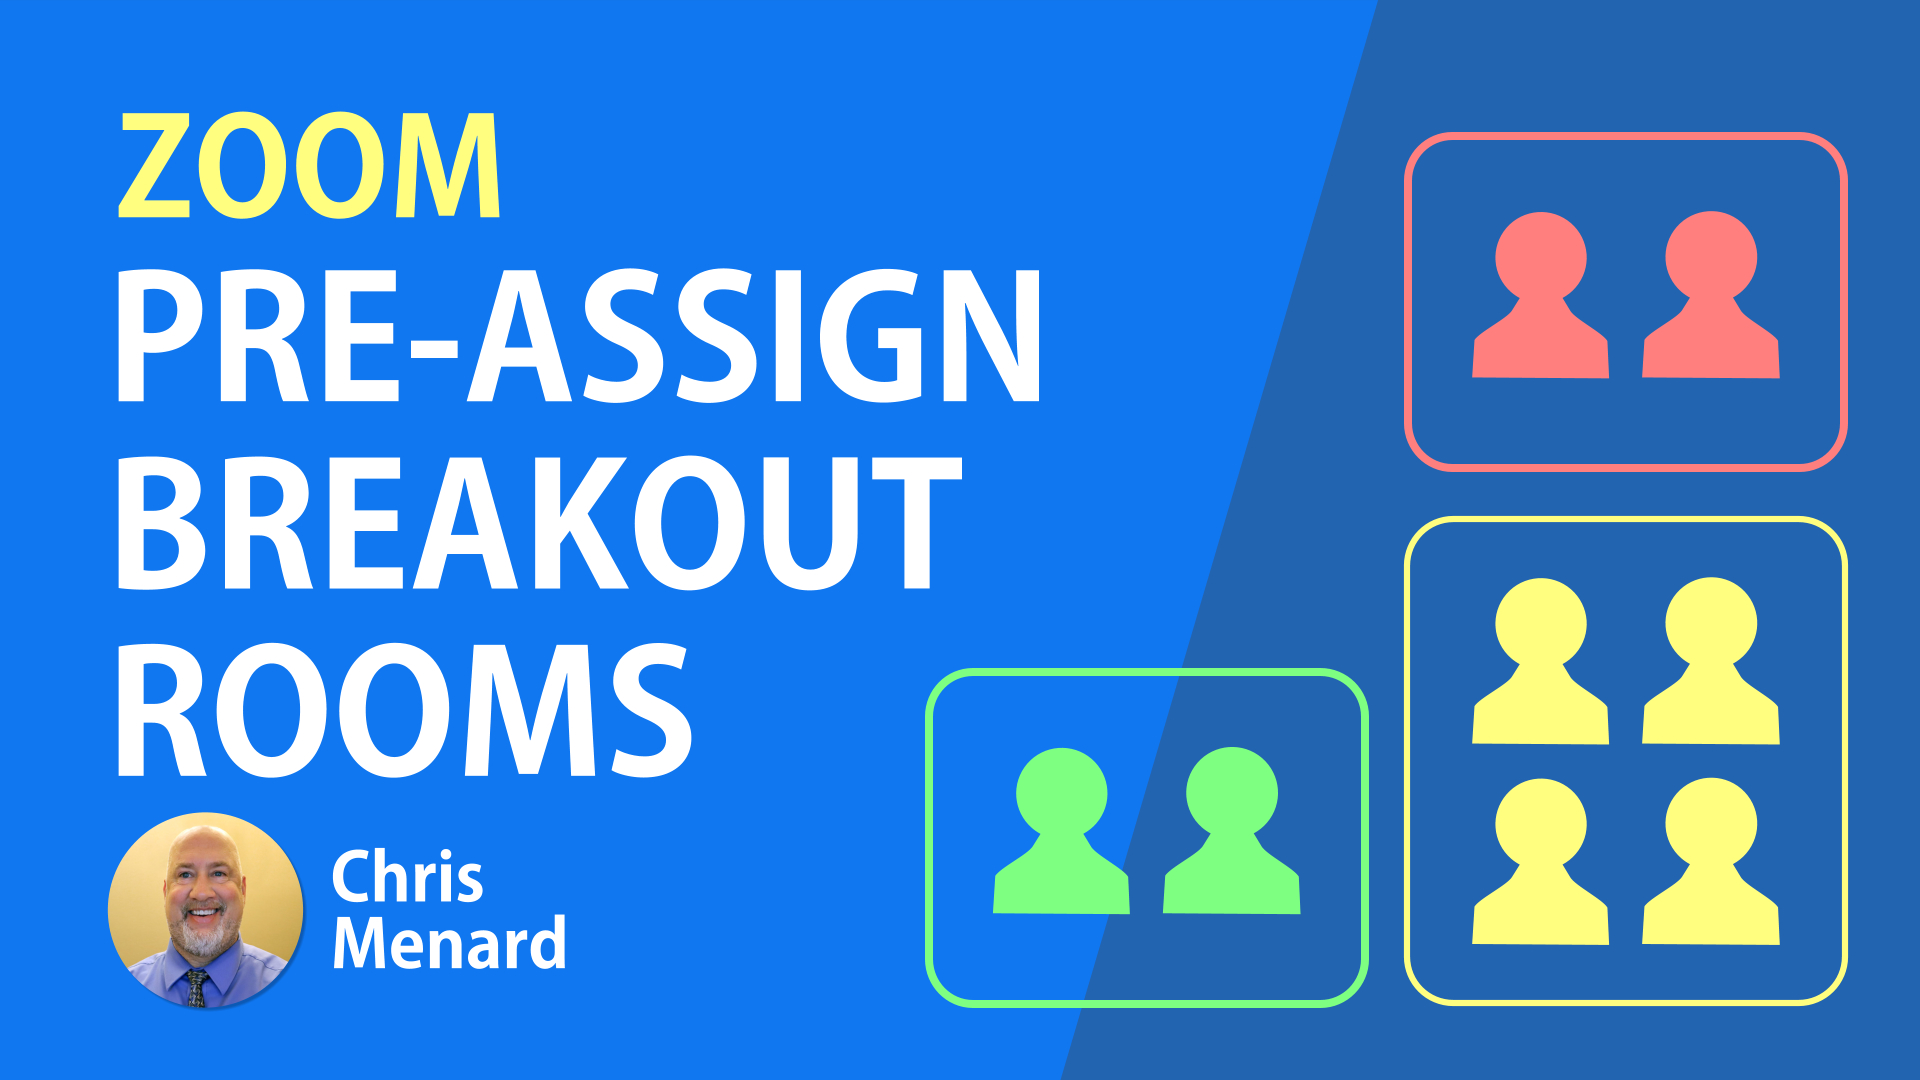 Pre-assign breakout rooms in Zoom